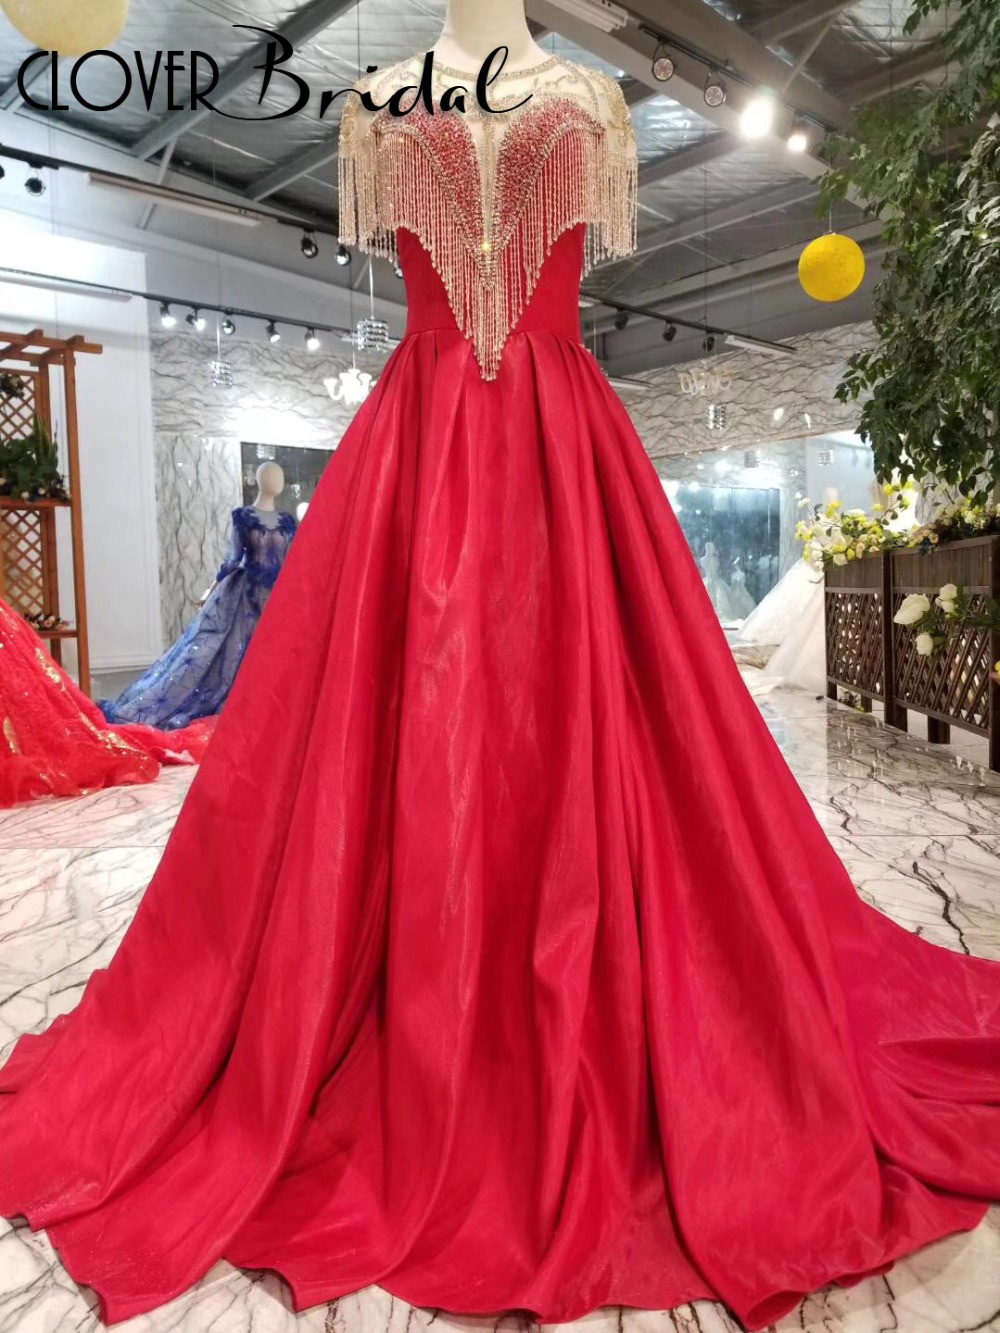 CloverBridal luxury crystals tassels high quality red satin   prom     dresses   2019 keyhole back illusion neck gala   dress   long